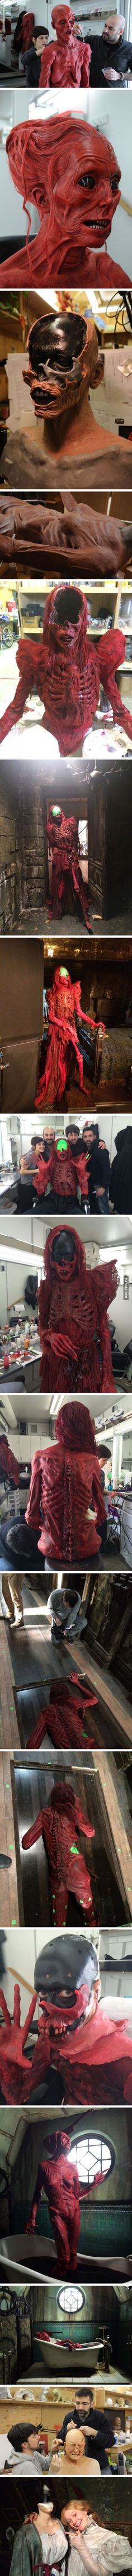 In Guillermo del Toro's 'Crimson Peak', the ghosts were actors in full makeup, enhanced by CGI (not other way around)